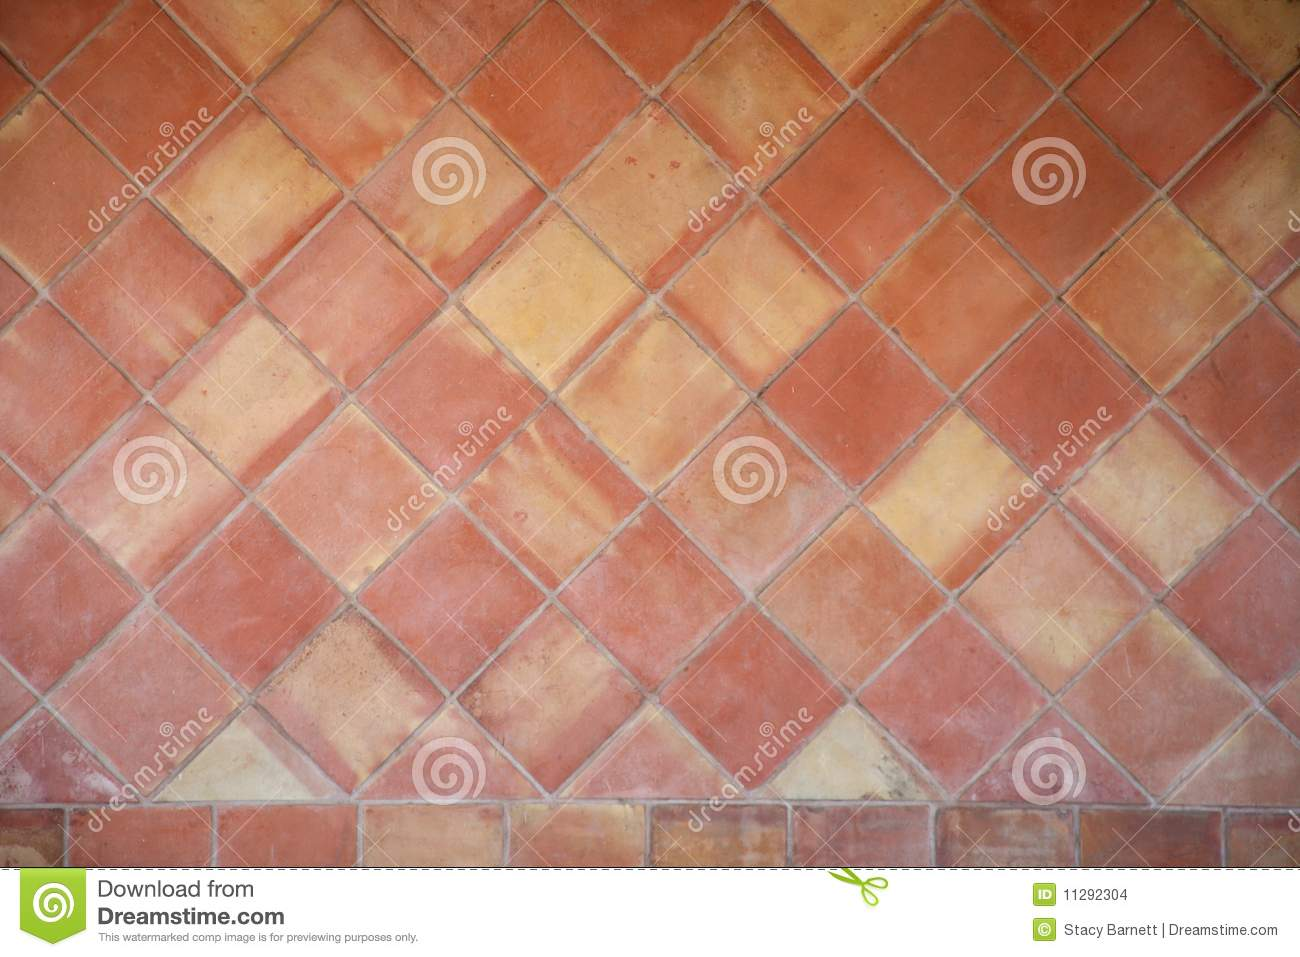 Spanish ceramic tile background stock images image 11292304 for Spanish clay tile